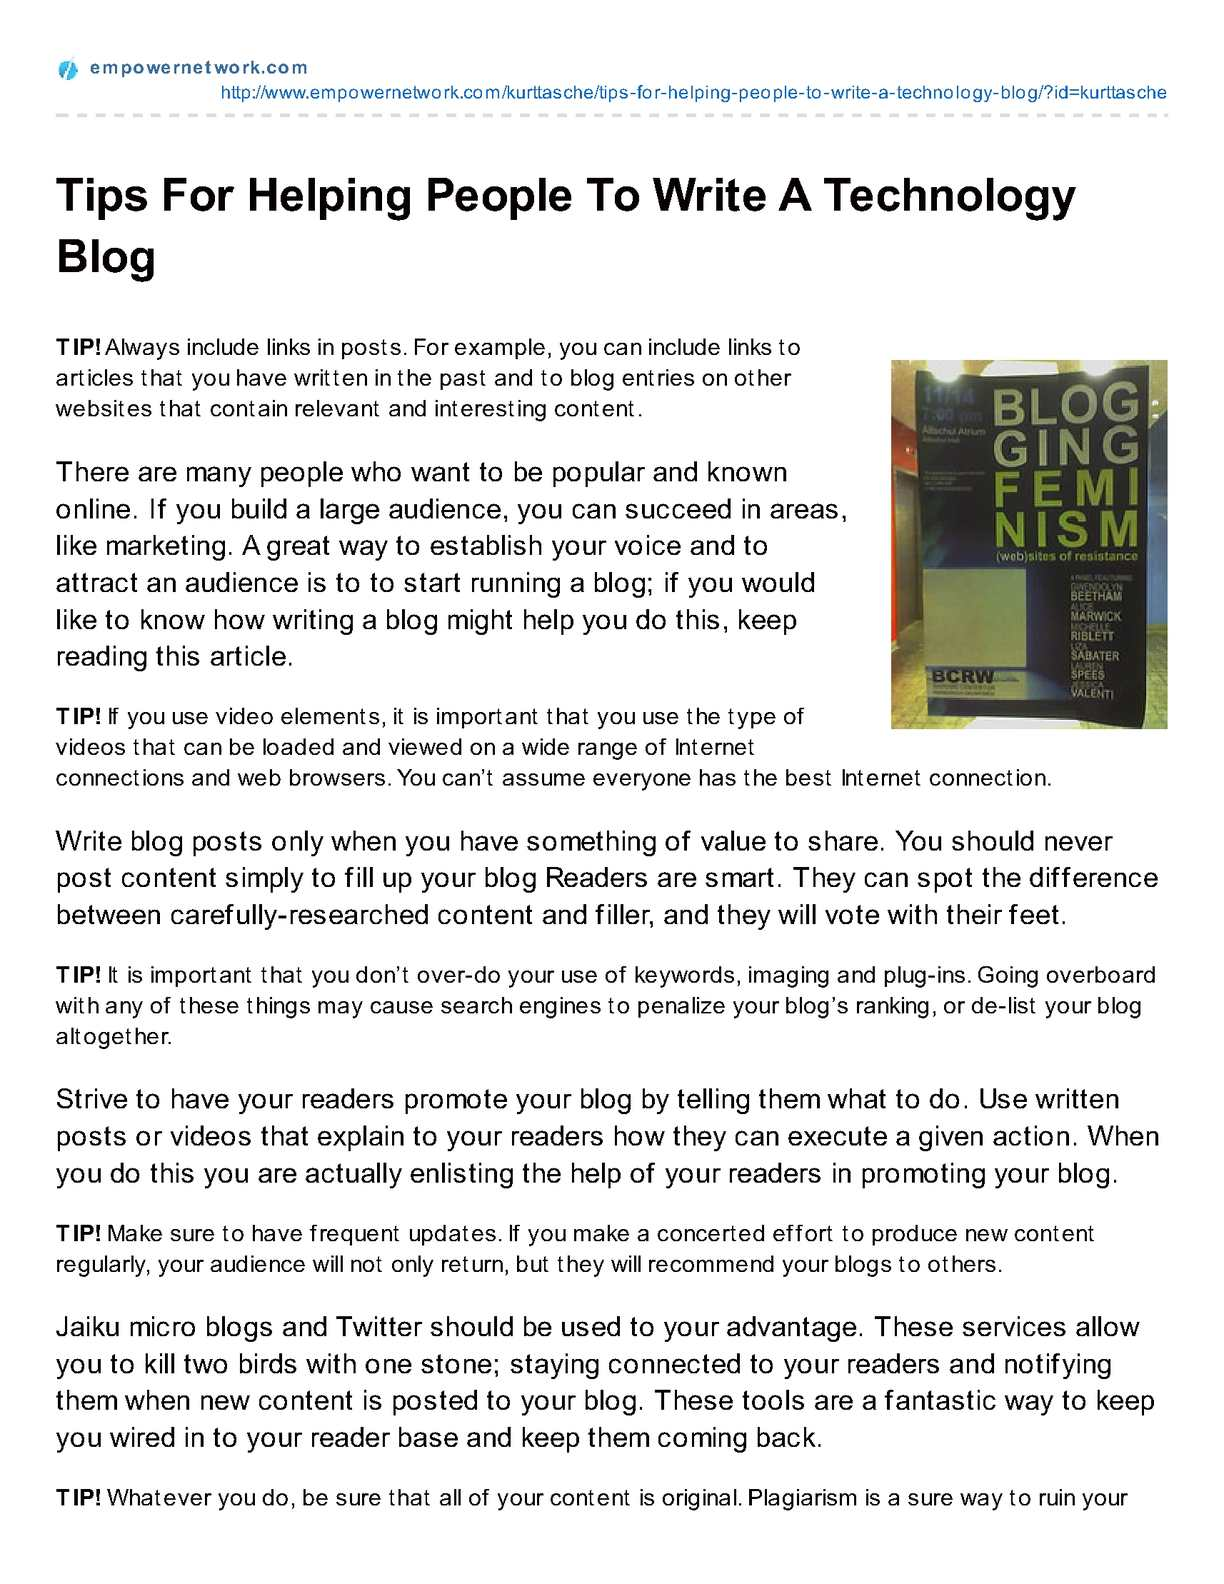 Calaméo - Tips_For_Helping_People_To_Write_A_Technology_Blog